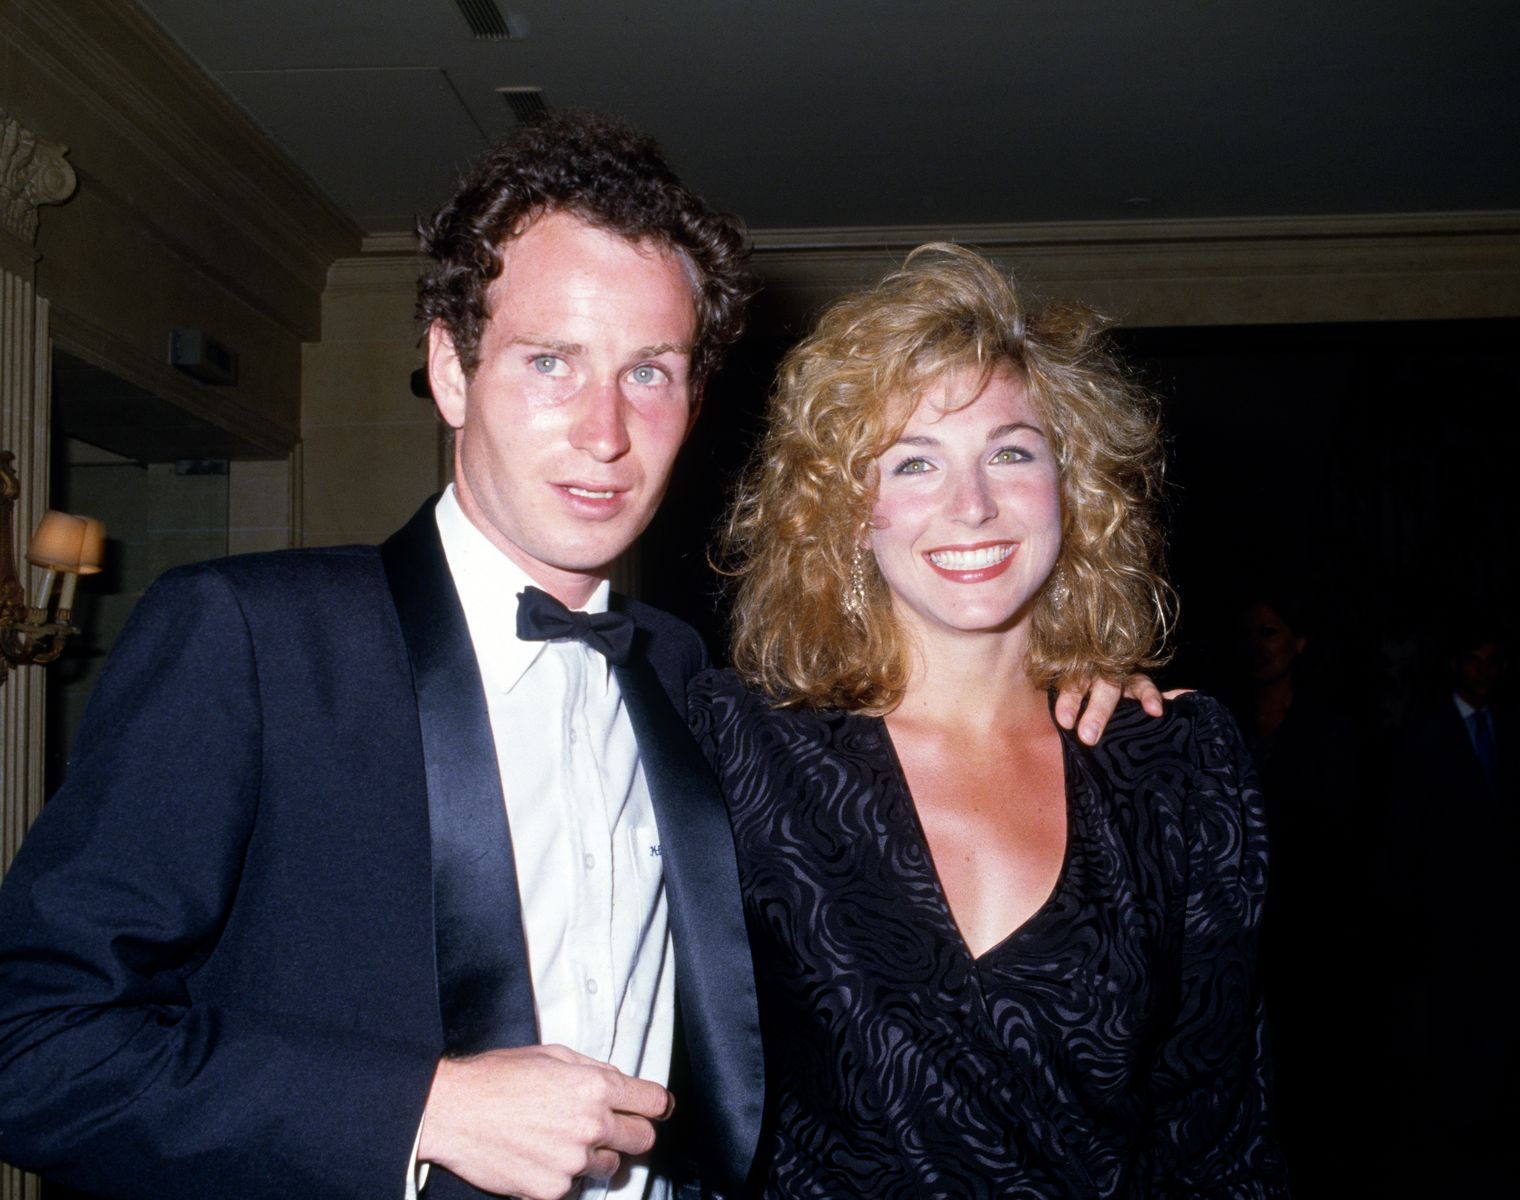 John McEnroe and Tatum O'Neal at the Players' Evening at the French Open Tennis Championships in 1985 | Source: Getty Images